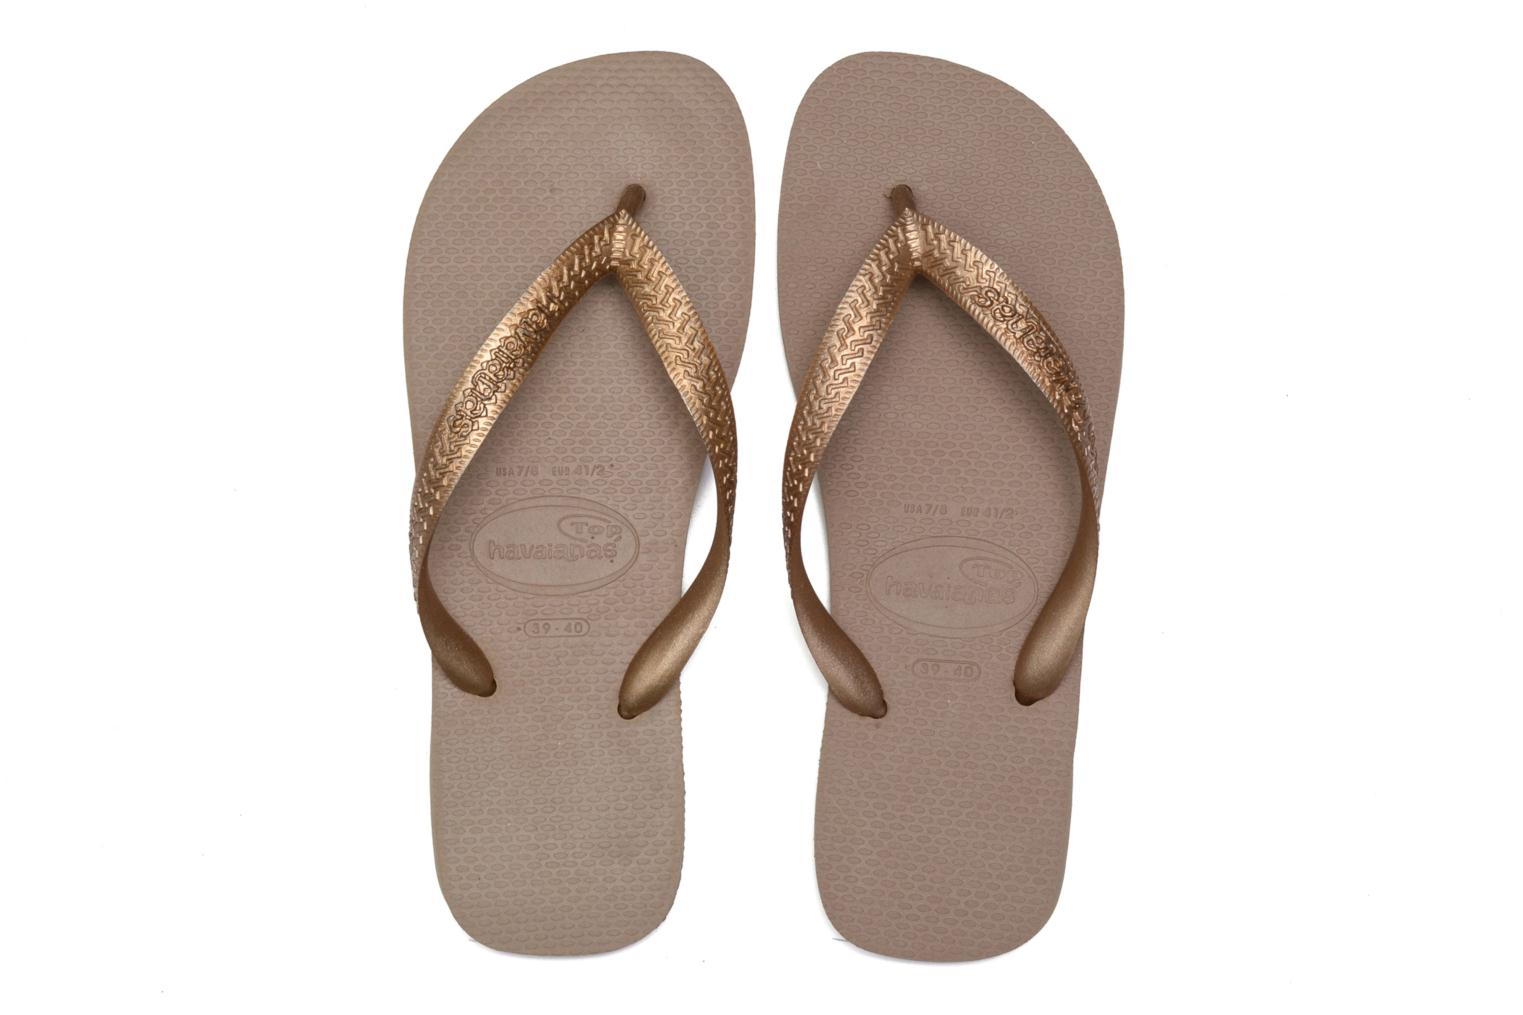 Chanclas Havaianas Top Metallic F Oro y bronce vista 3/4